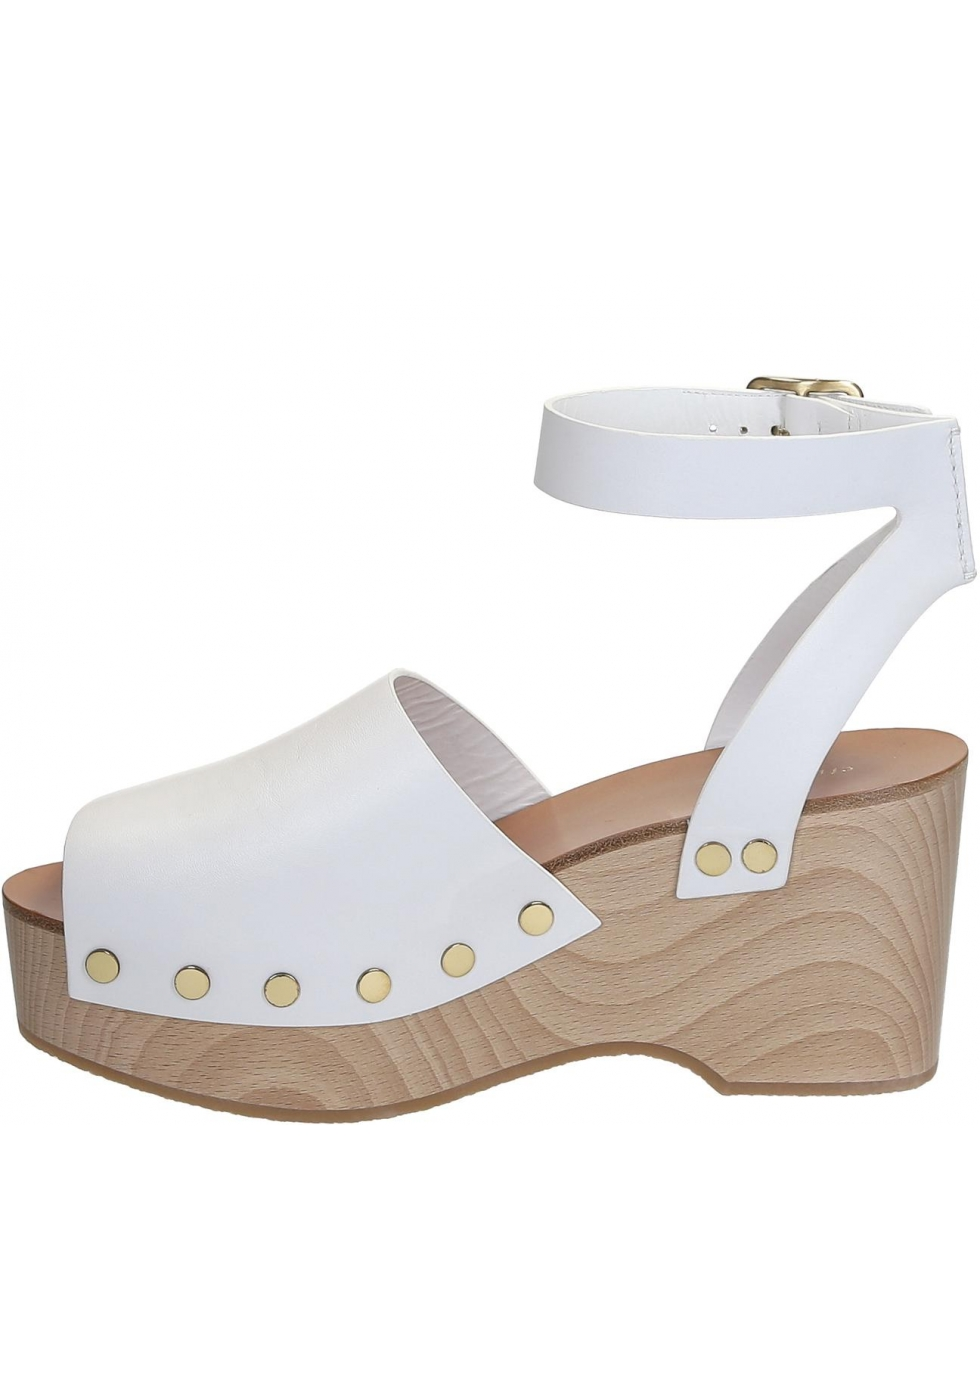 f9a6cf0a35846 Céline wedges clogs sandals in white Calf leather - Italian Boutique